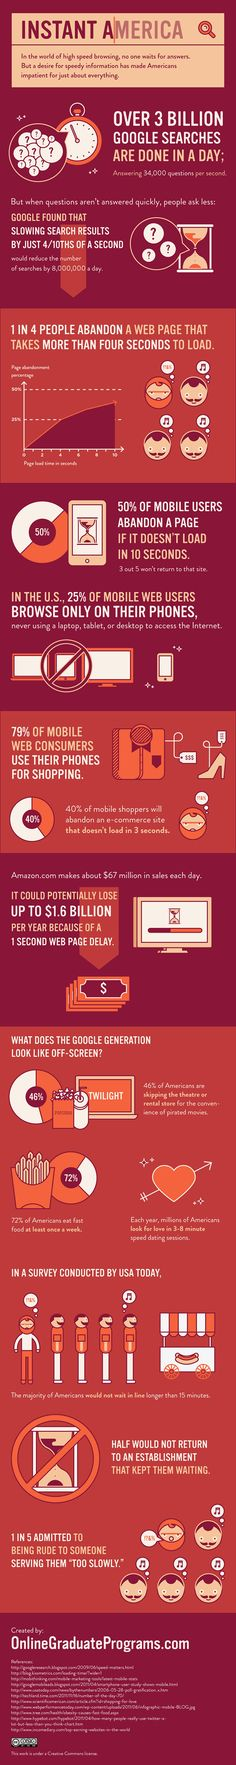 Amazing stats on how quickly US visitors on the web will abandon a site if it is slow to load.